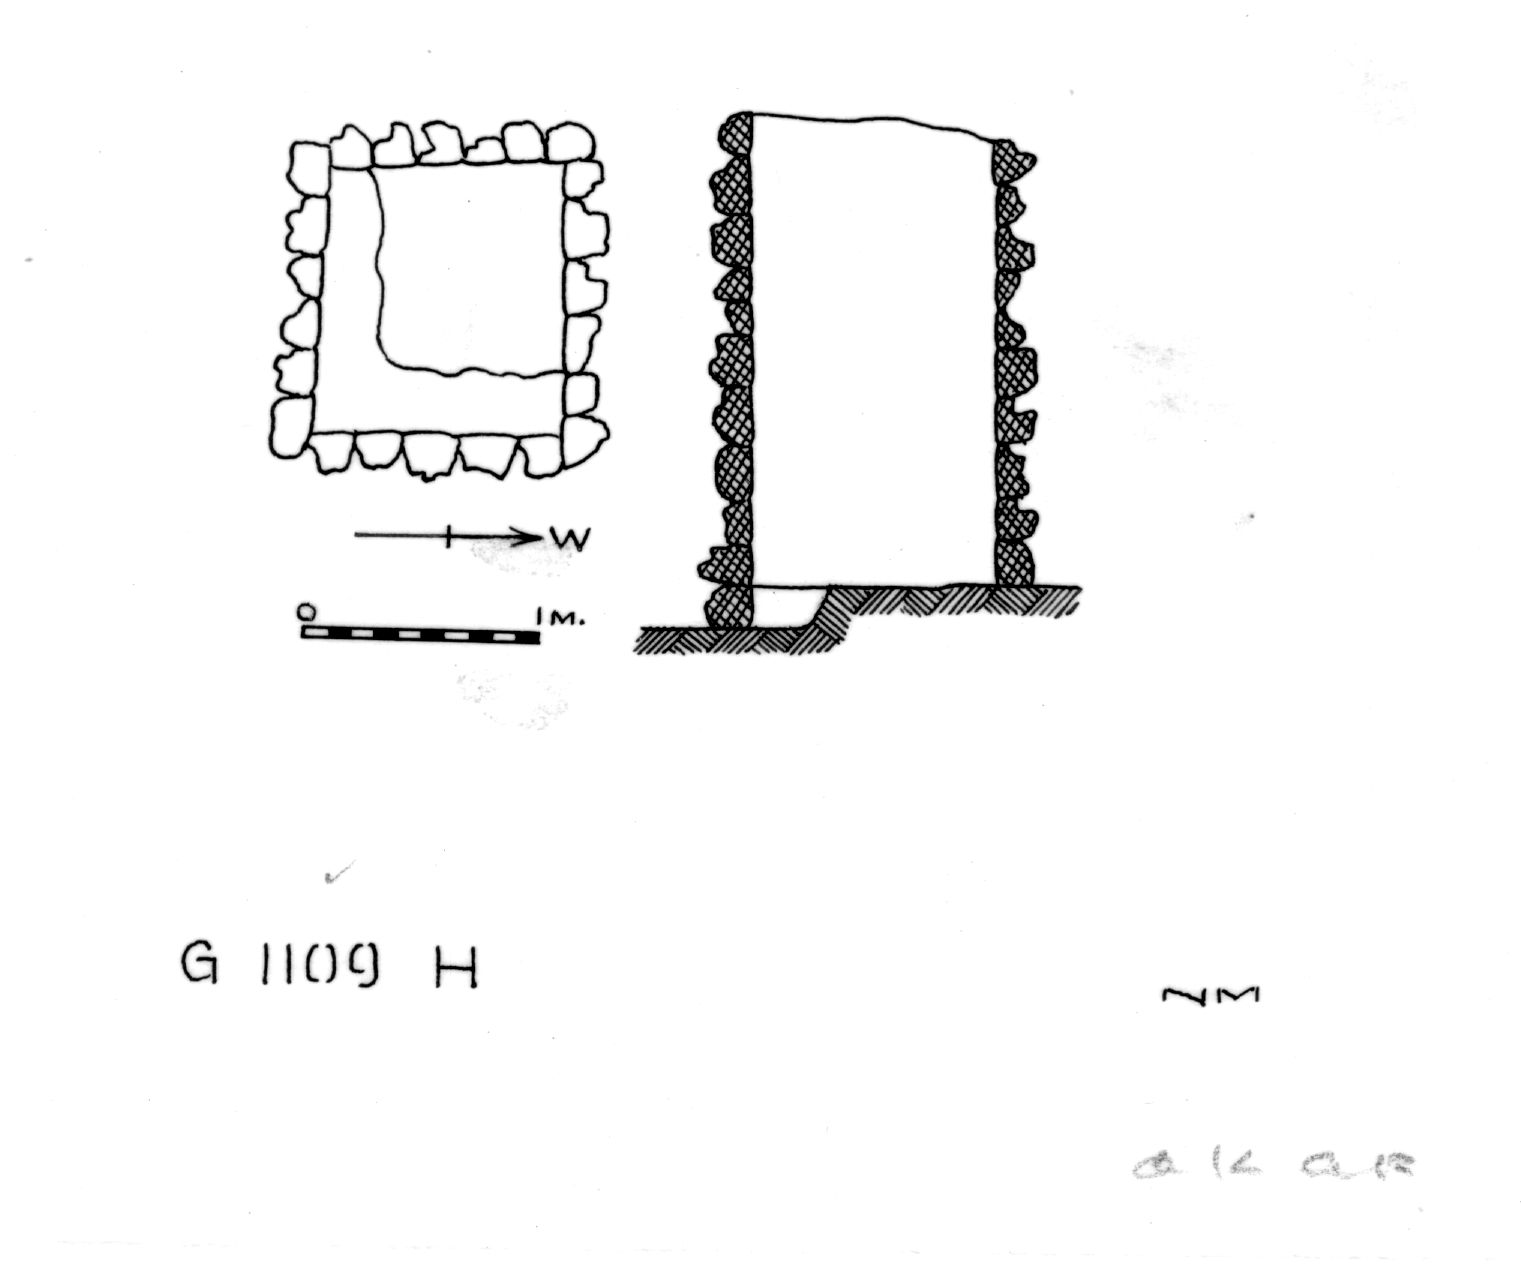 Maps and plans: G 1109, Shaft H